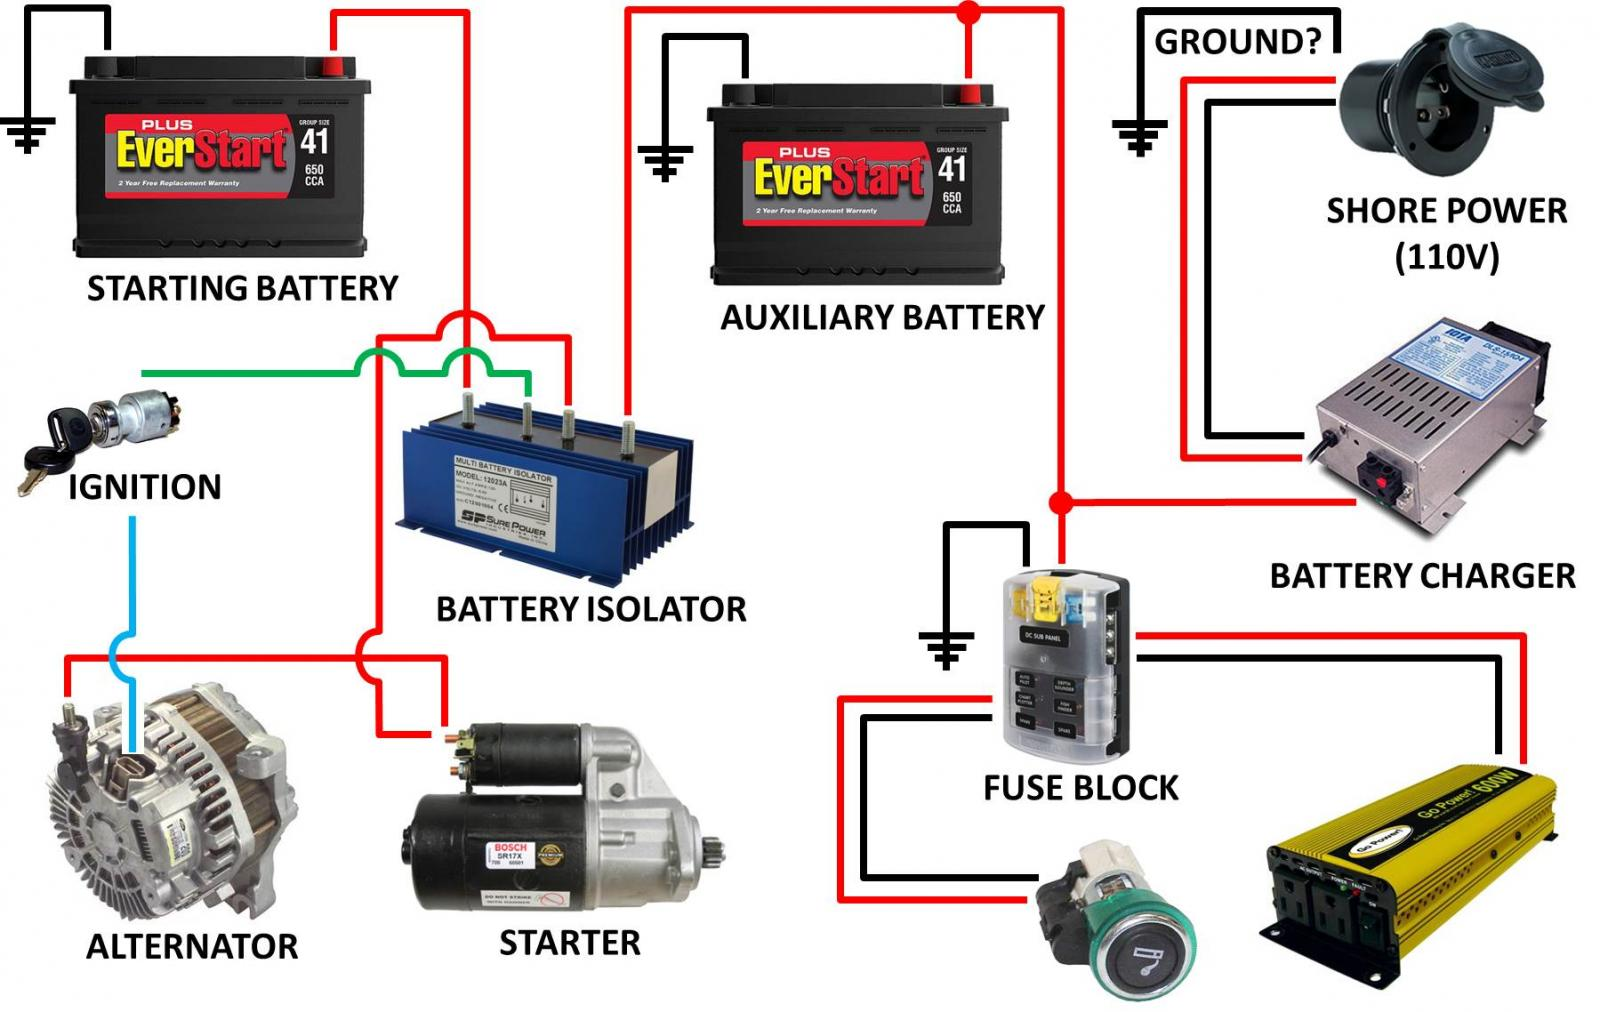 1381156 thesamba com vanagon view topic simplest auxiliary battery vanagon auxiliary battery wiring diagram at aneh.co